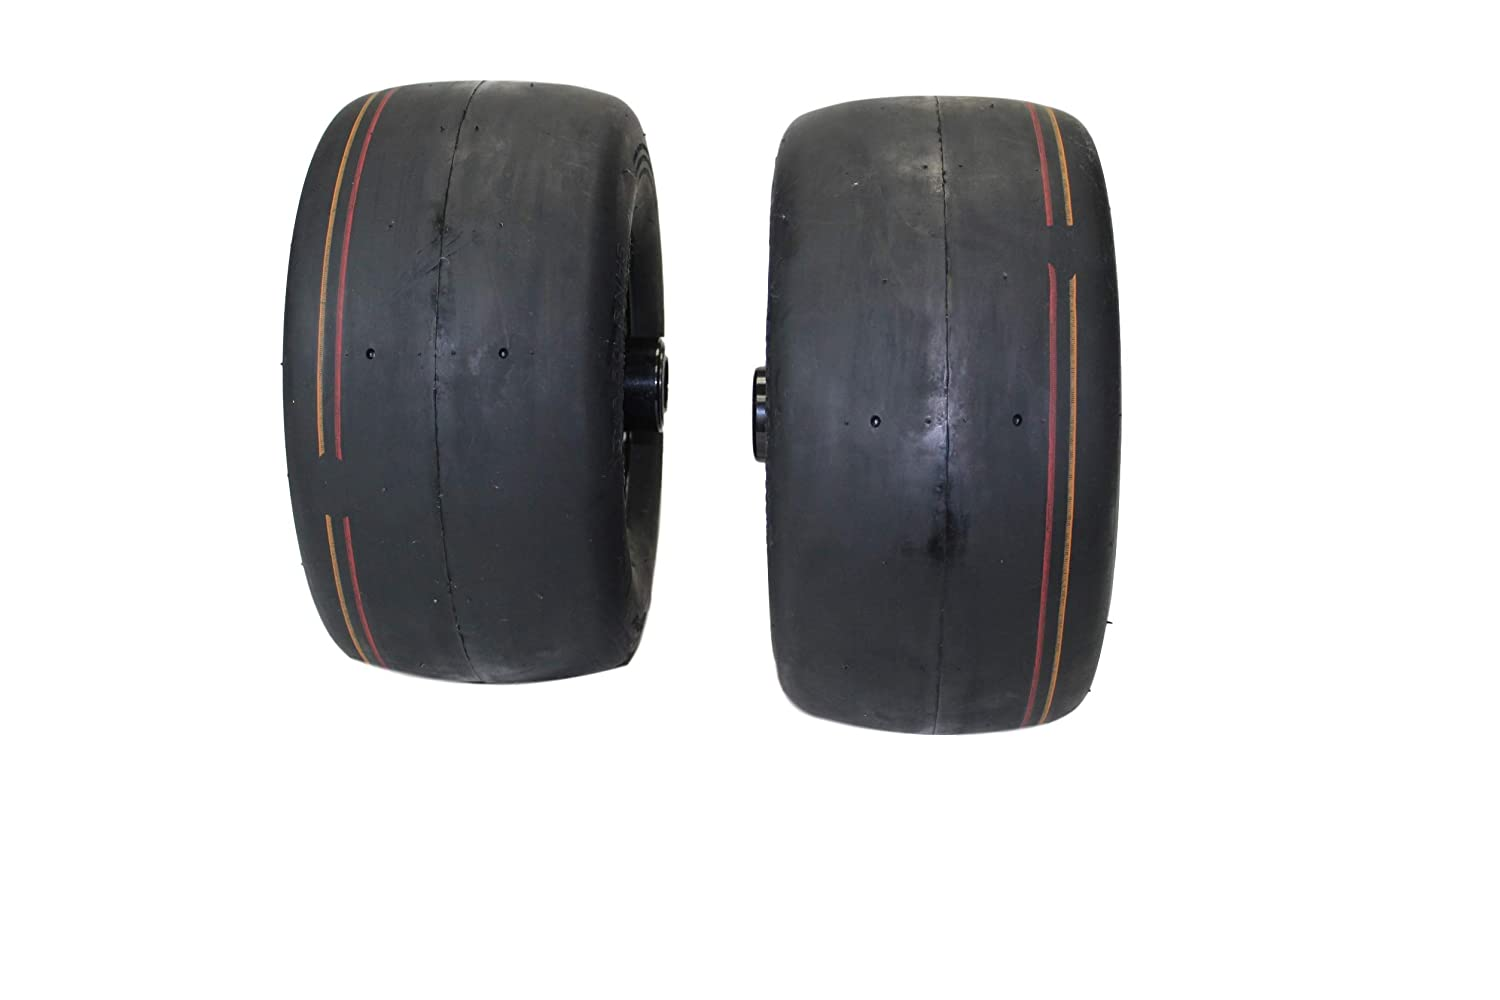 13x6.50-6 4 Ply Smooth with 6x4.5 Black Wheel Assembly Set of 2